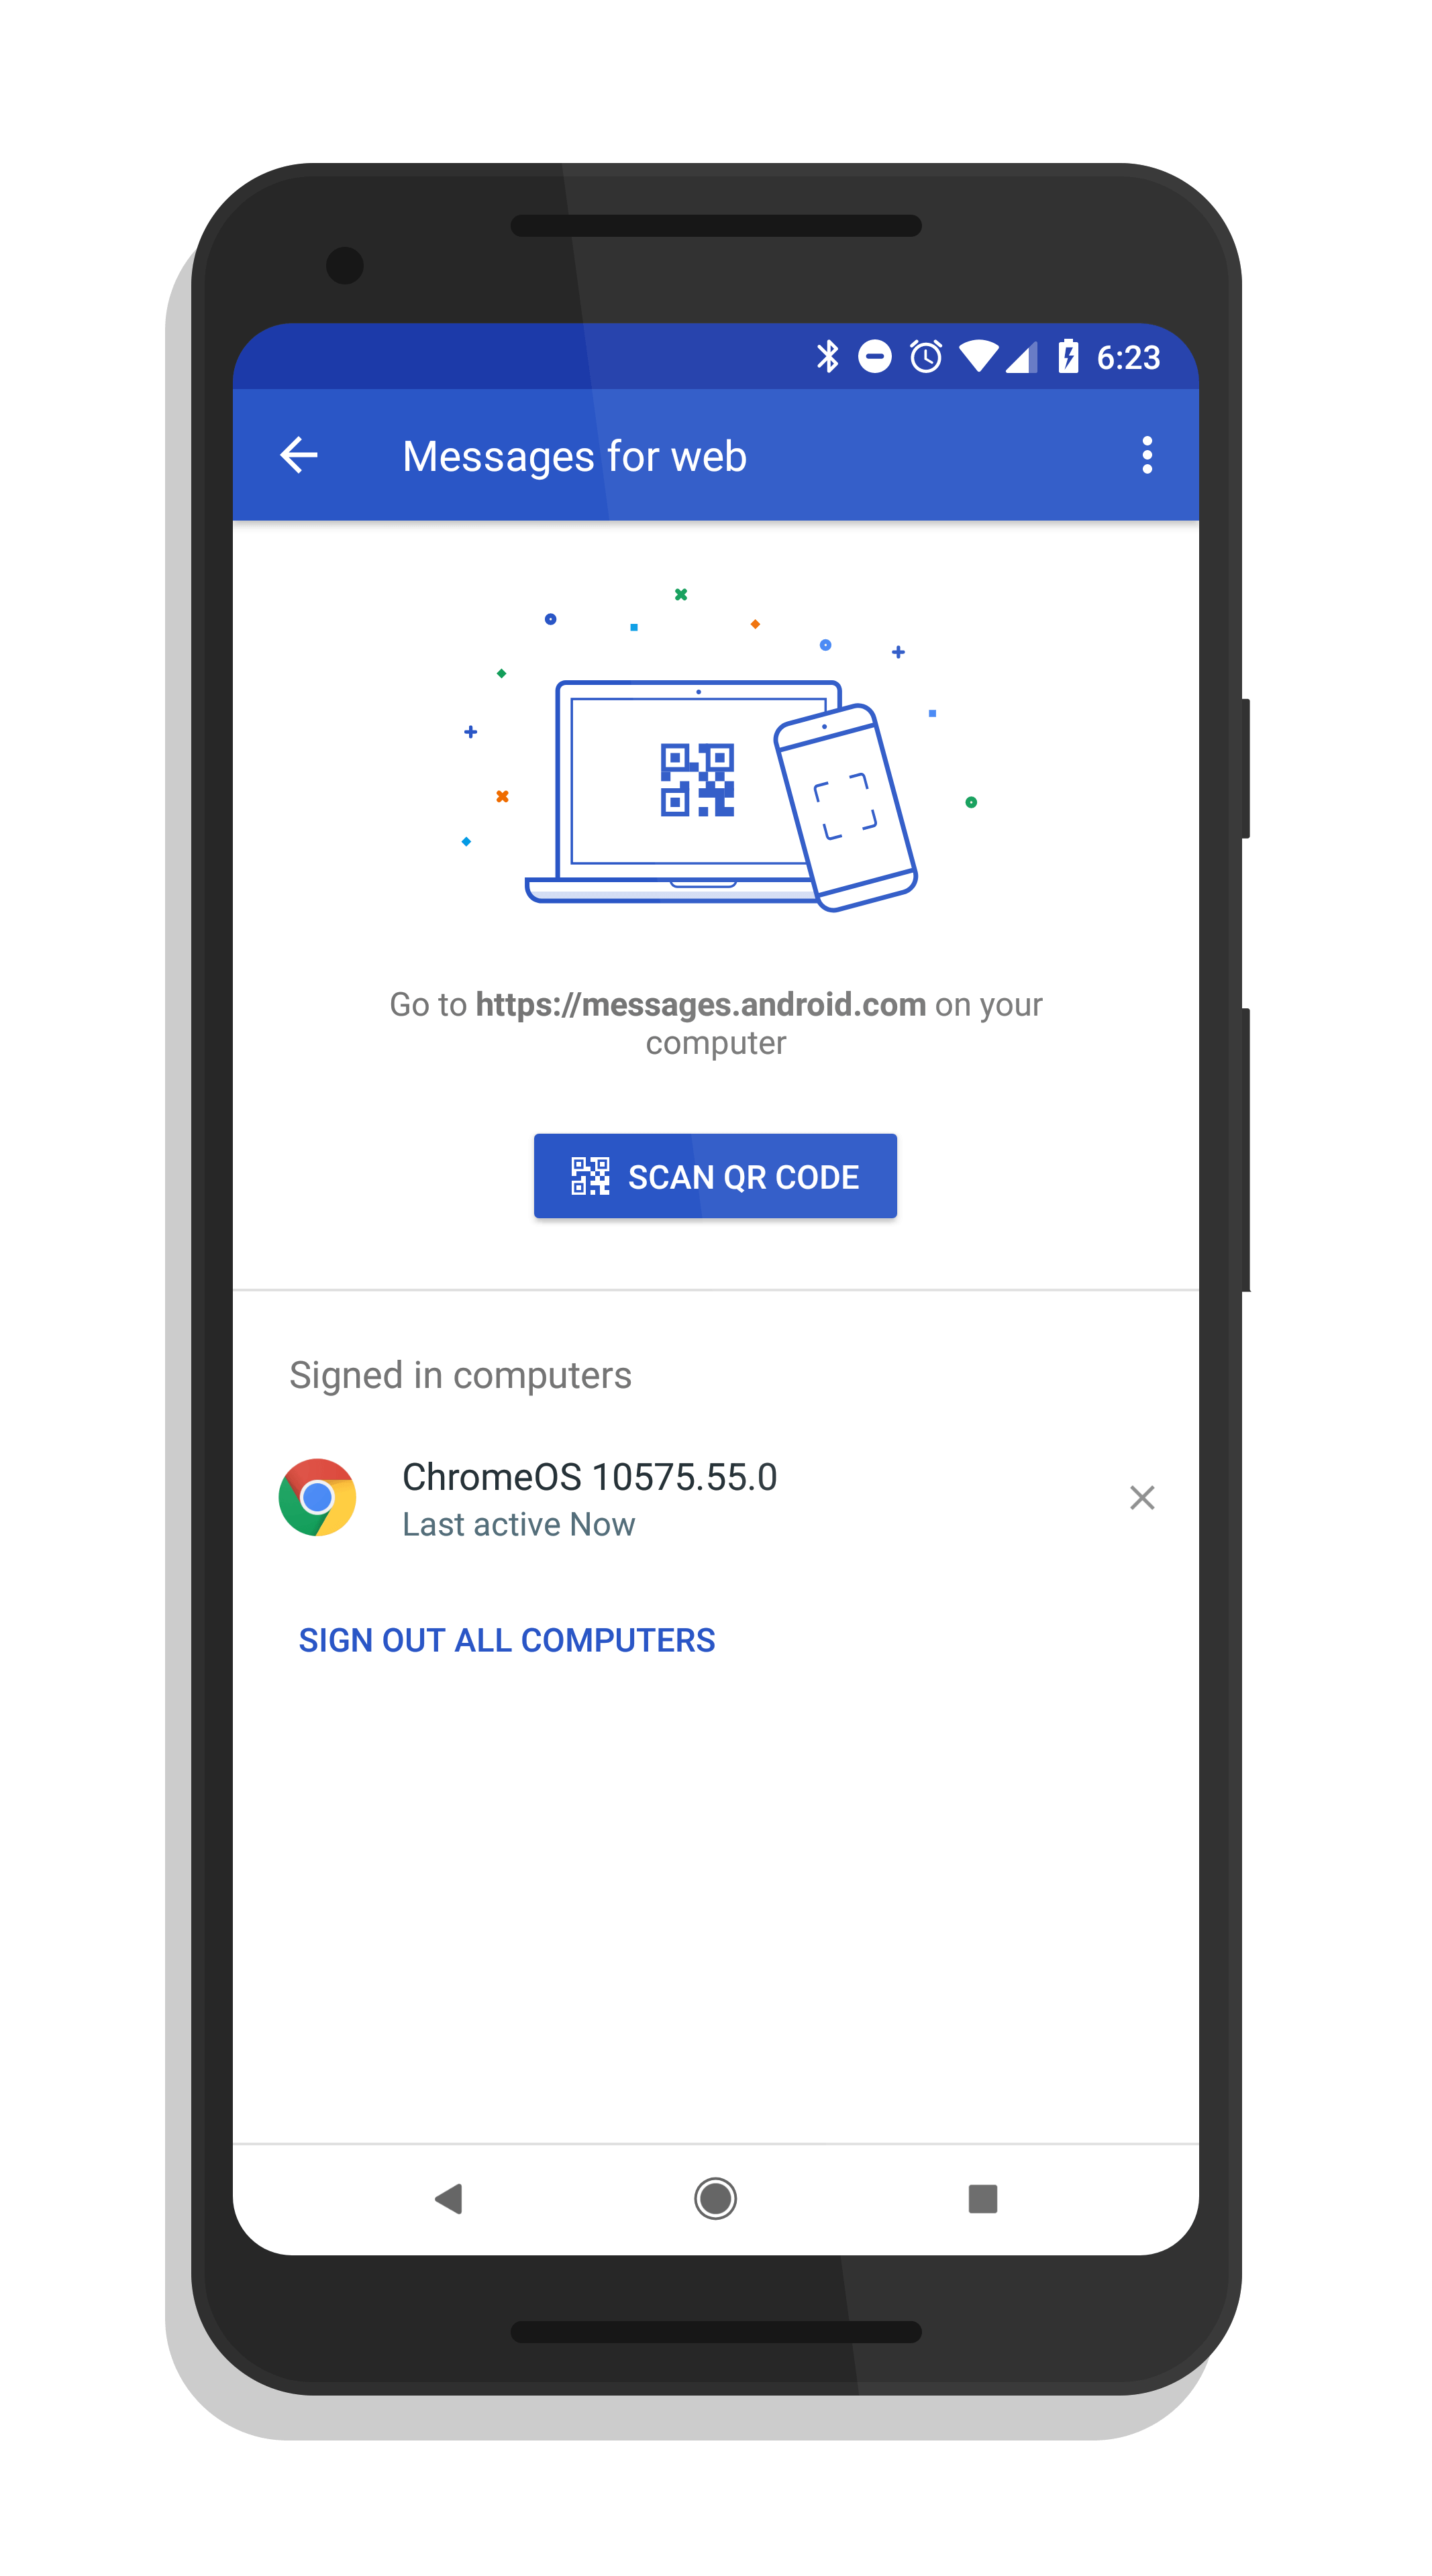 Android Messages for Web Now Fully Deployed According to